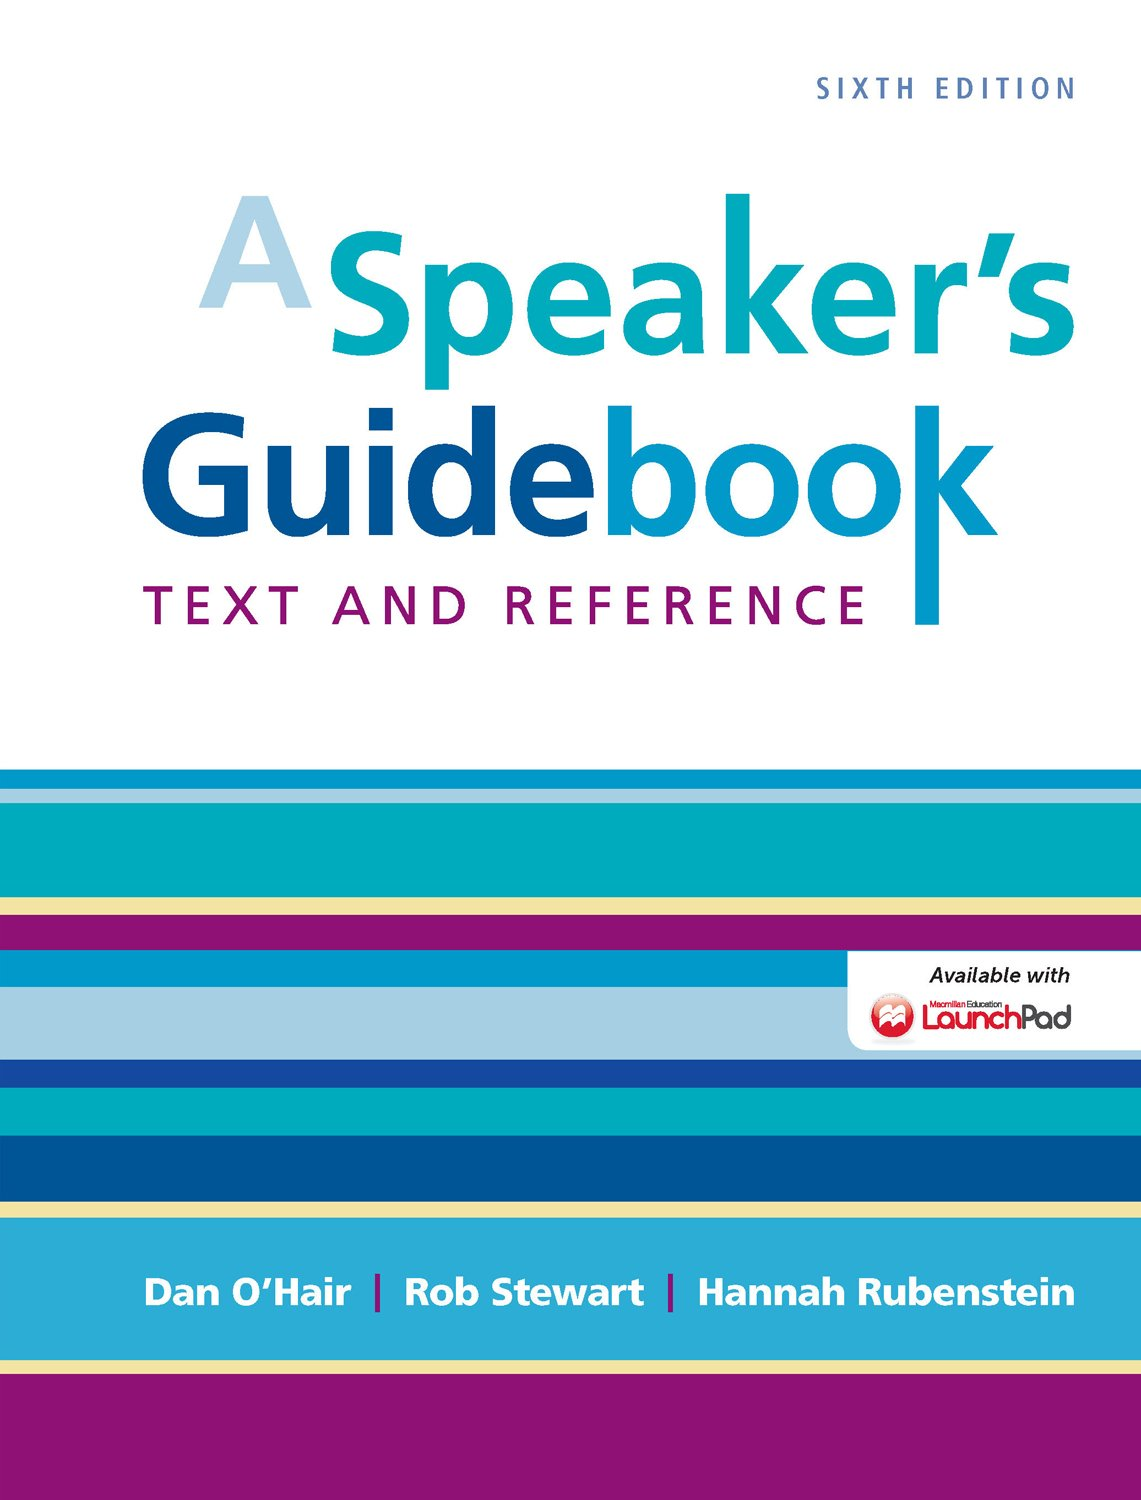 A Speakers Guidebook 6th Edition Pdf